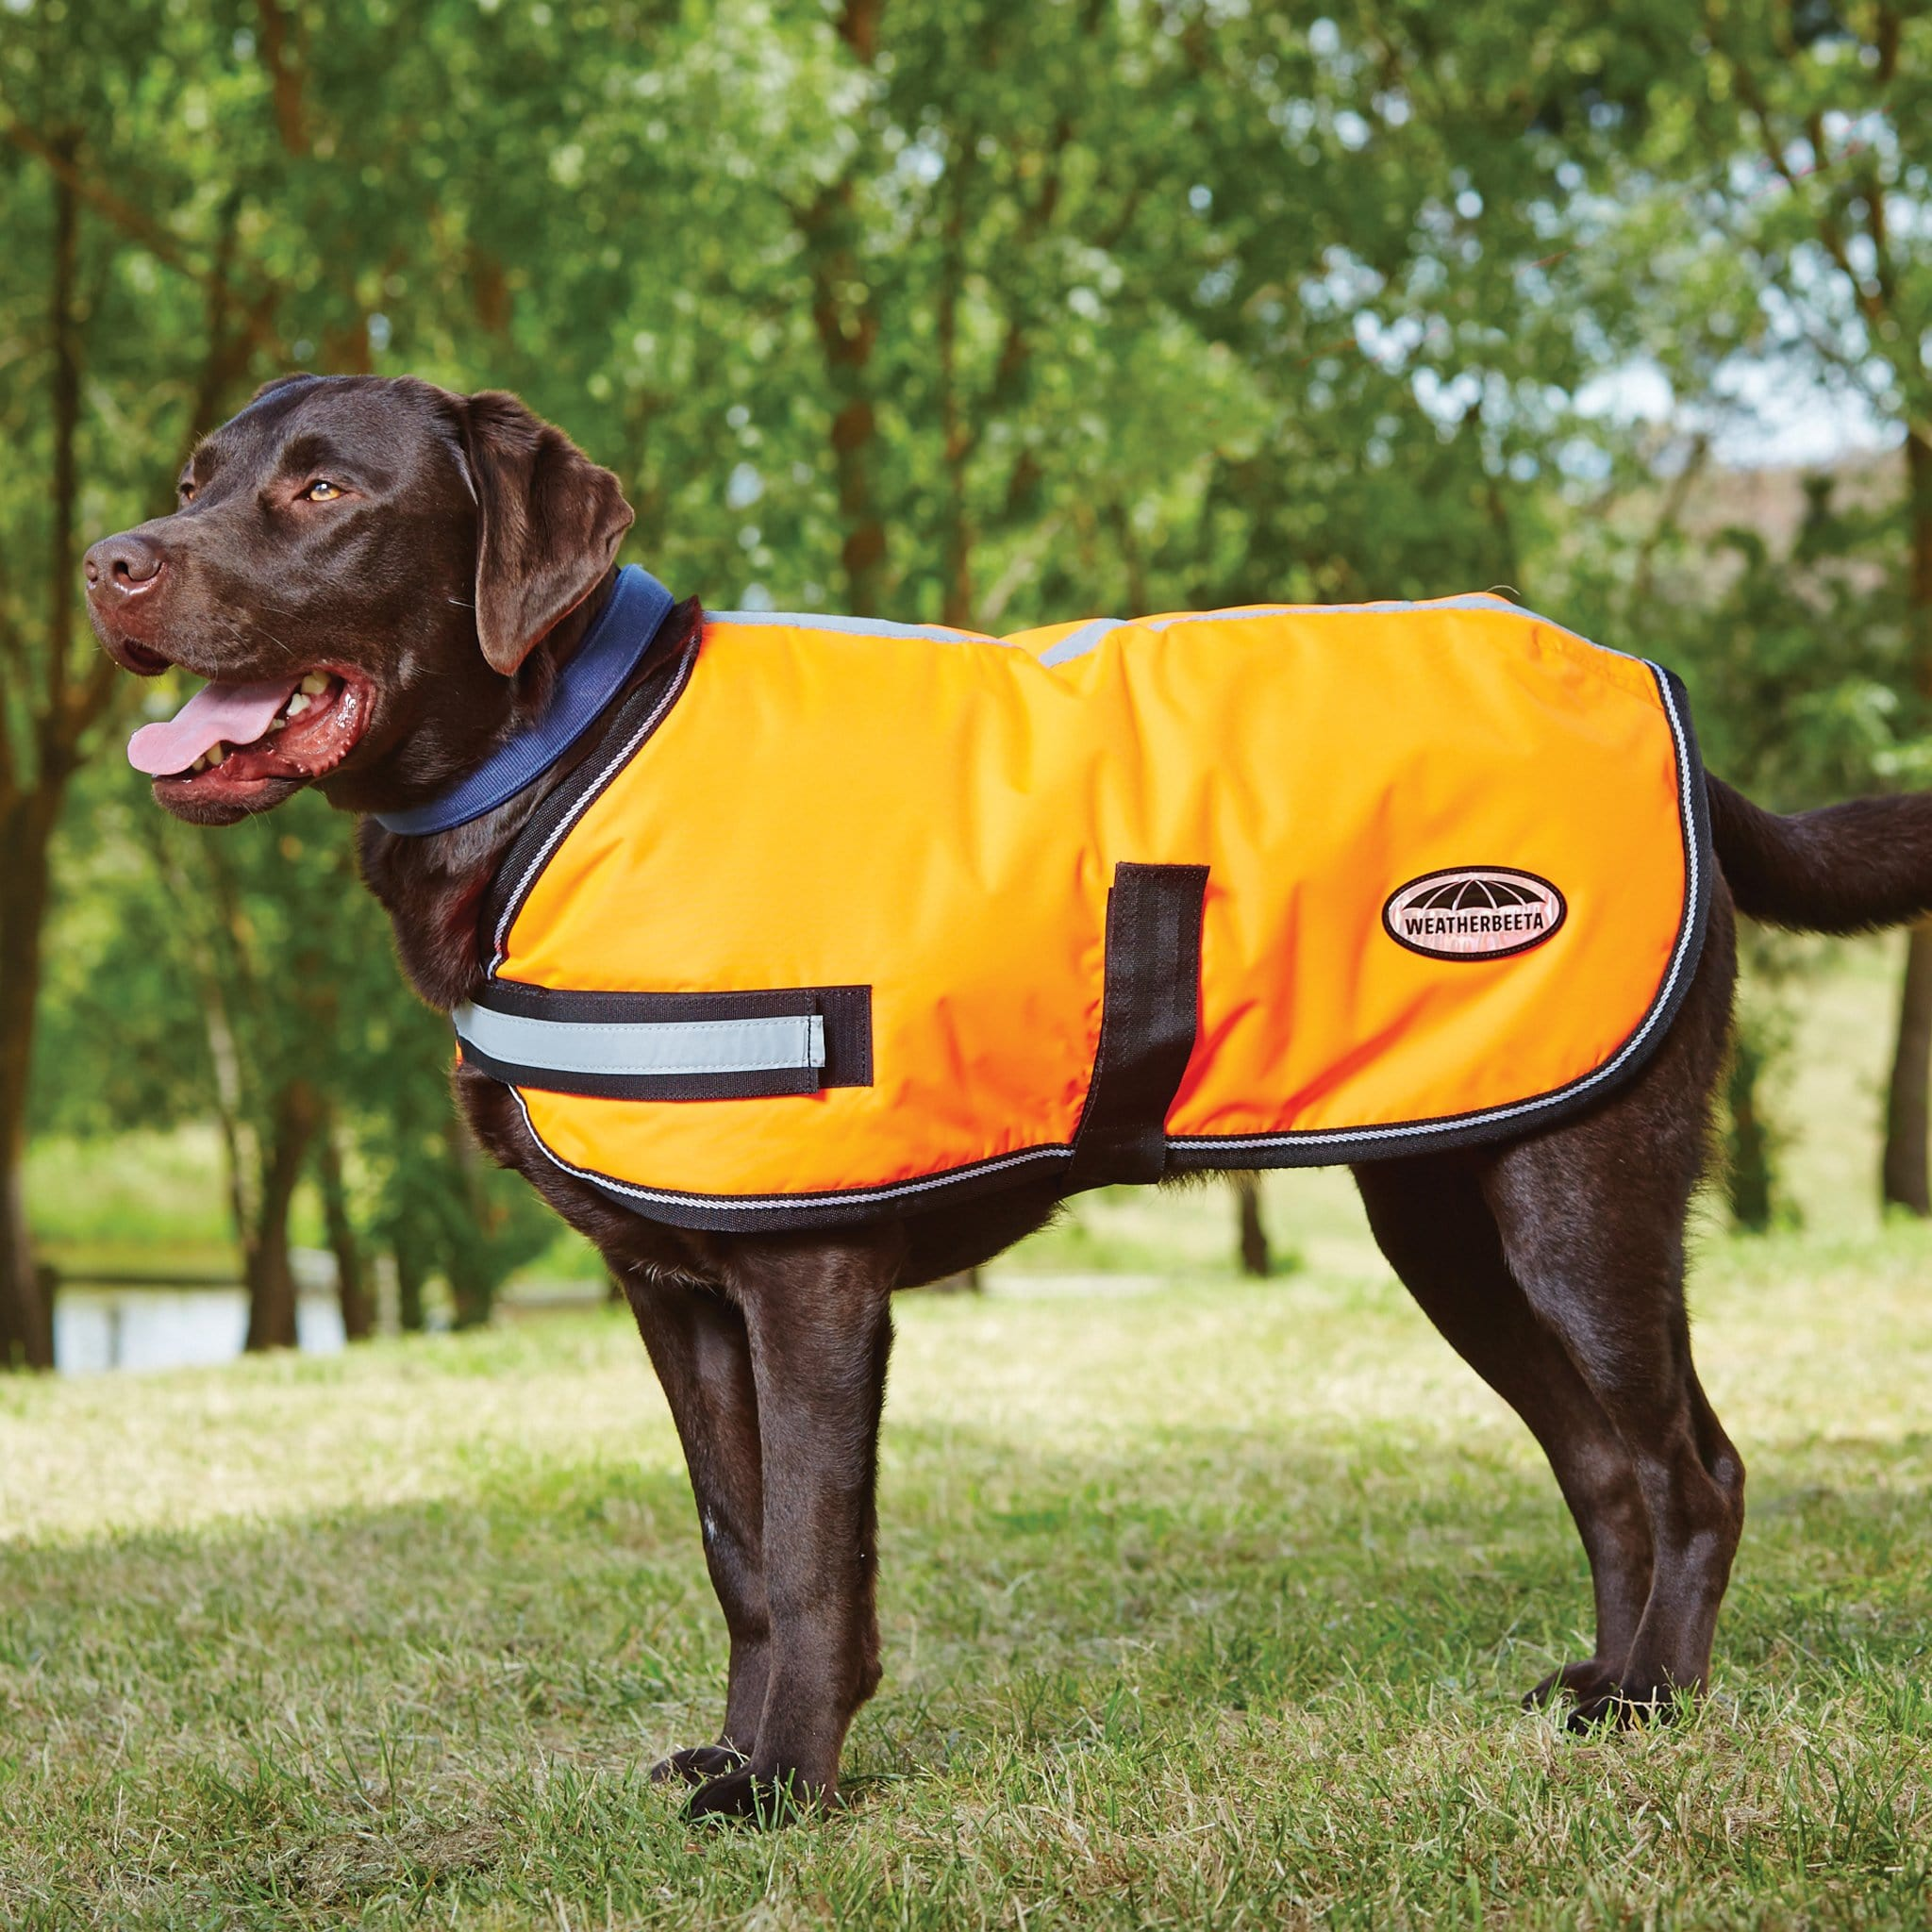 Weatherbeeta ComFiTec Reflective Parka 300D Dog Coat Orange On Dog 1001720001.